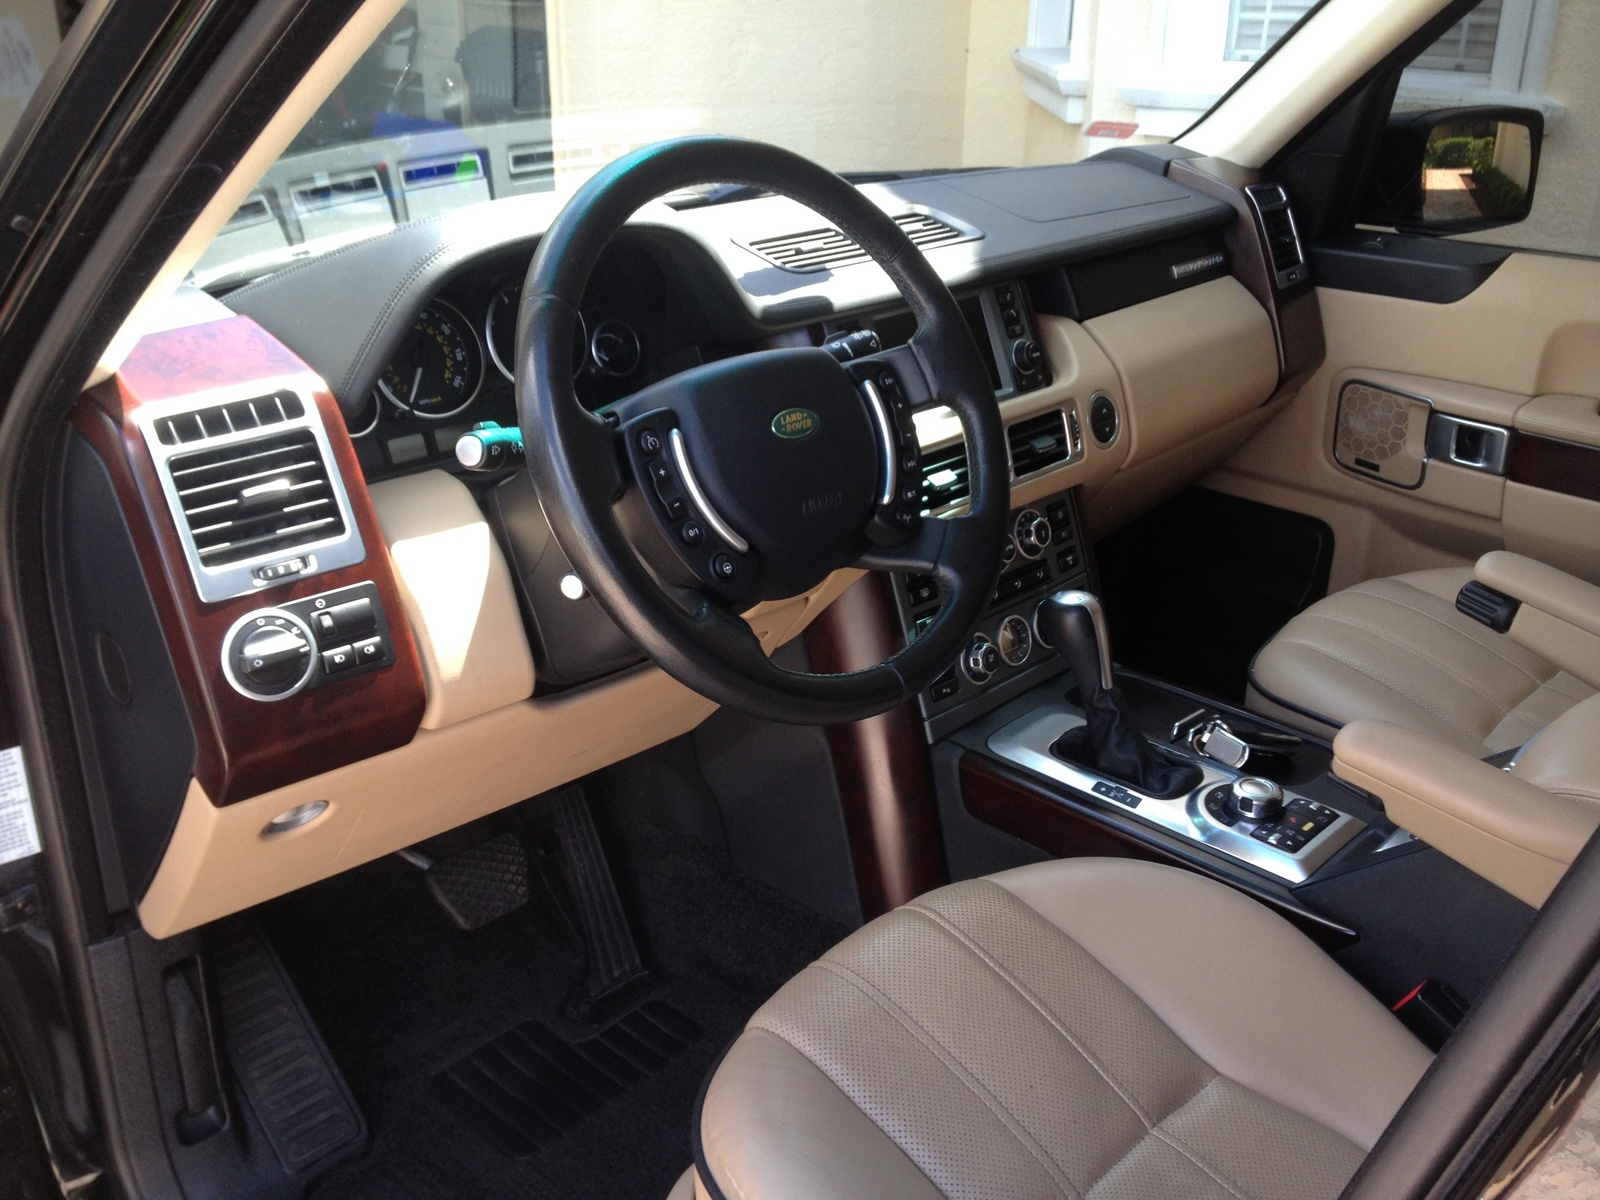 2007 range rover interior images amp pictures   becuo